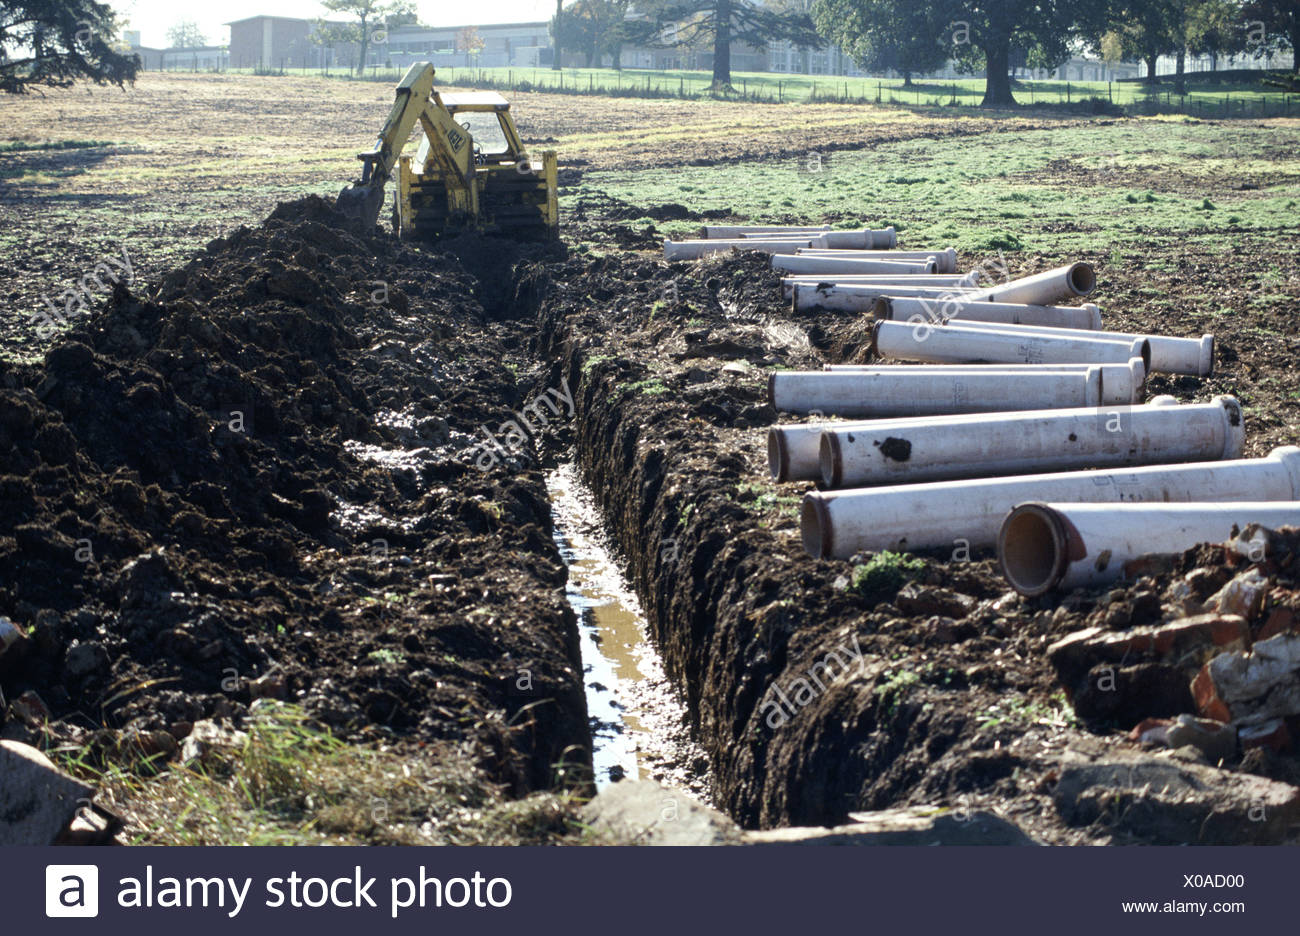 JCB Digger excavator digging trench for field drainage pipes - Stock Image